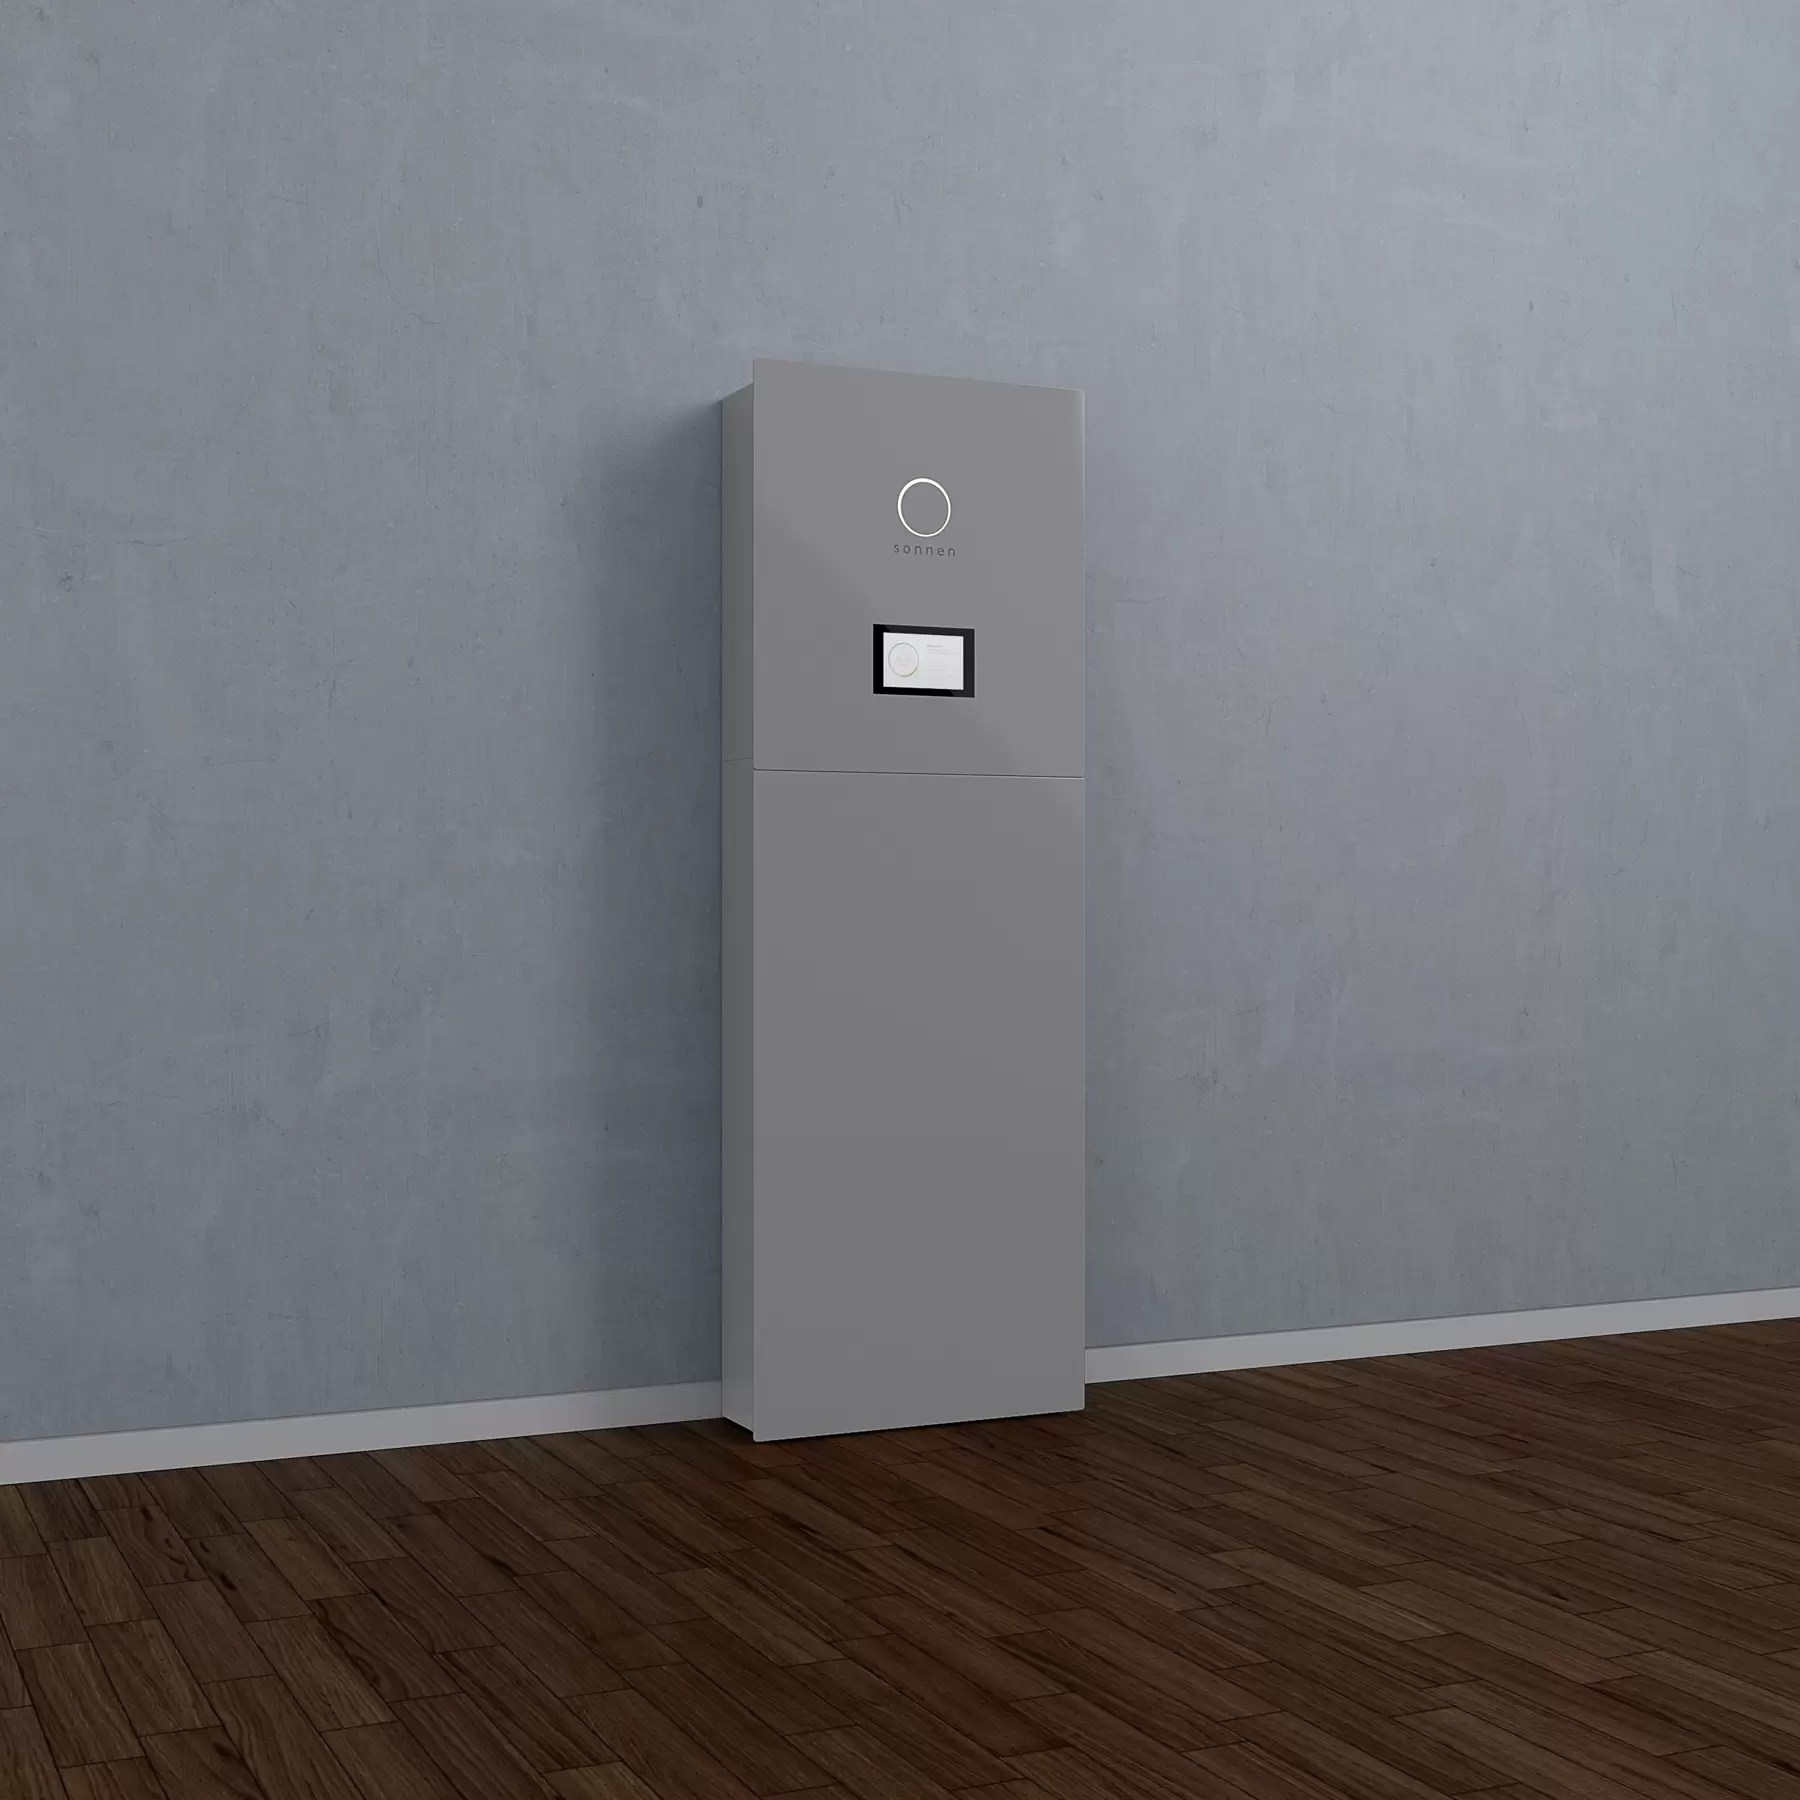 Ikea Takes On Tesla By Launching Its Own Home Battery Wired Uk